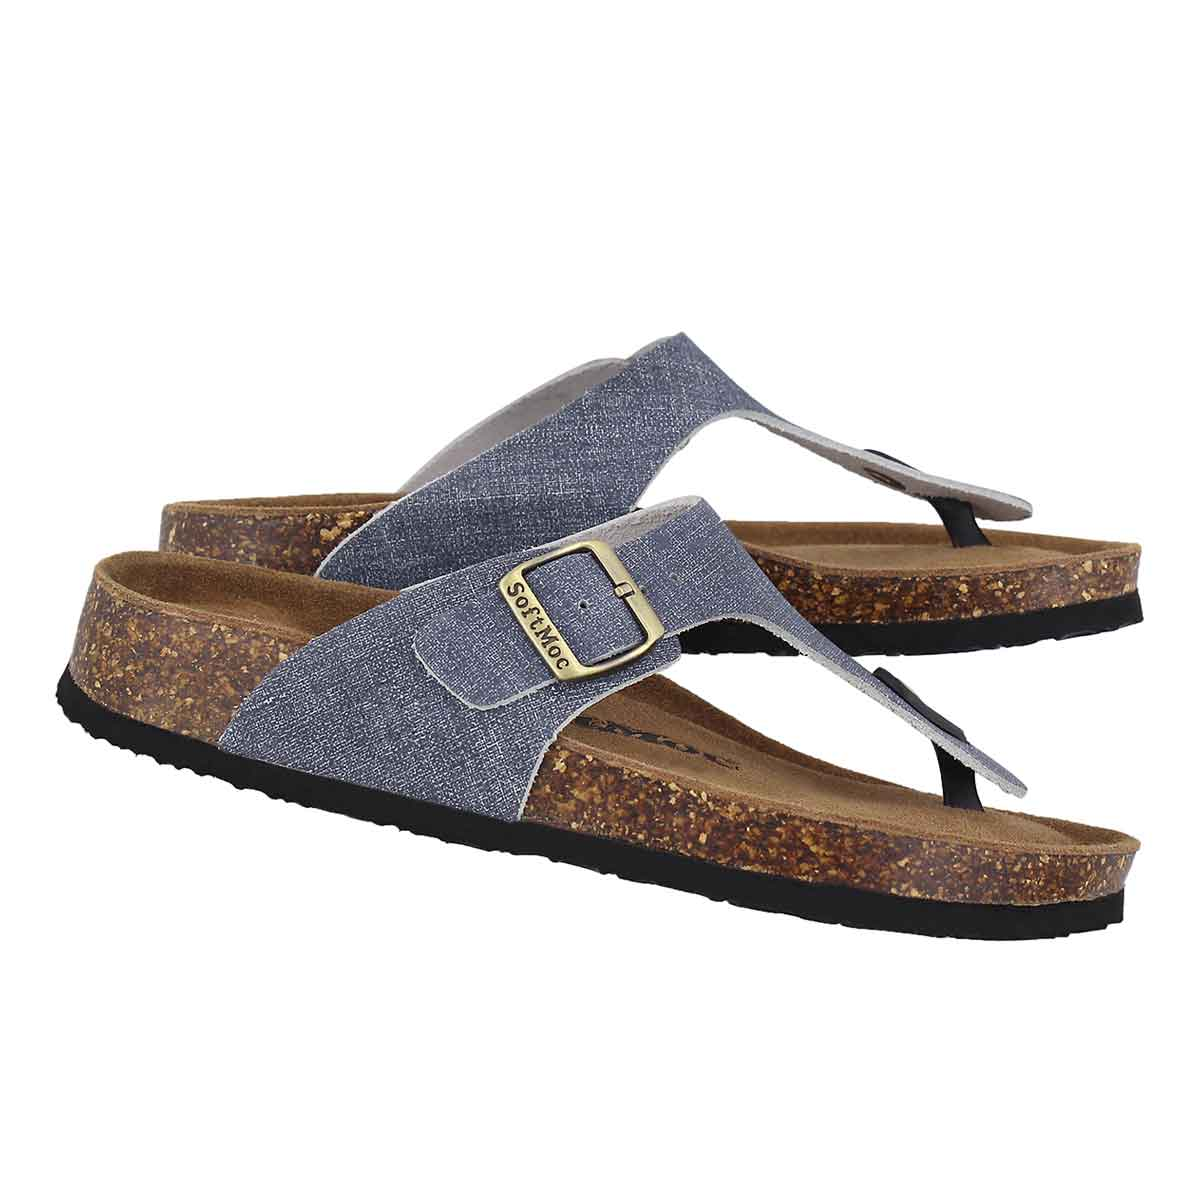 Lds Angy 5 denm memory foam thong sandal